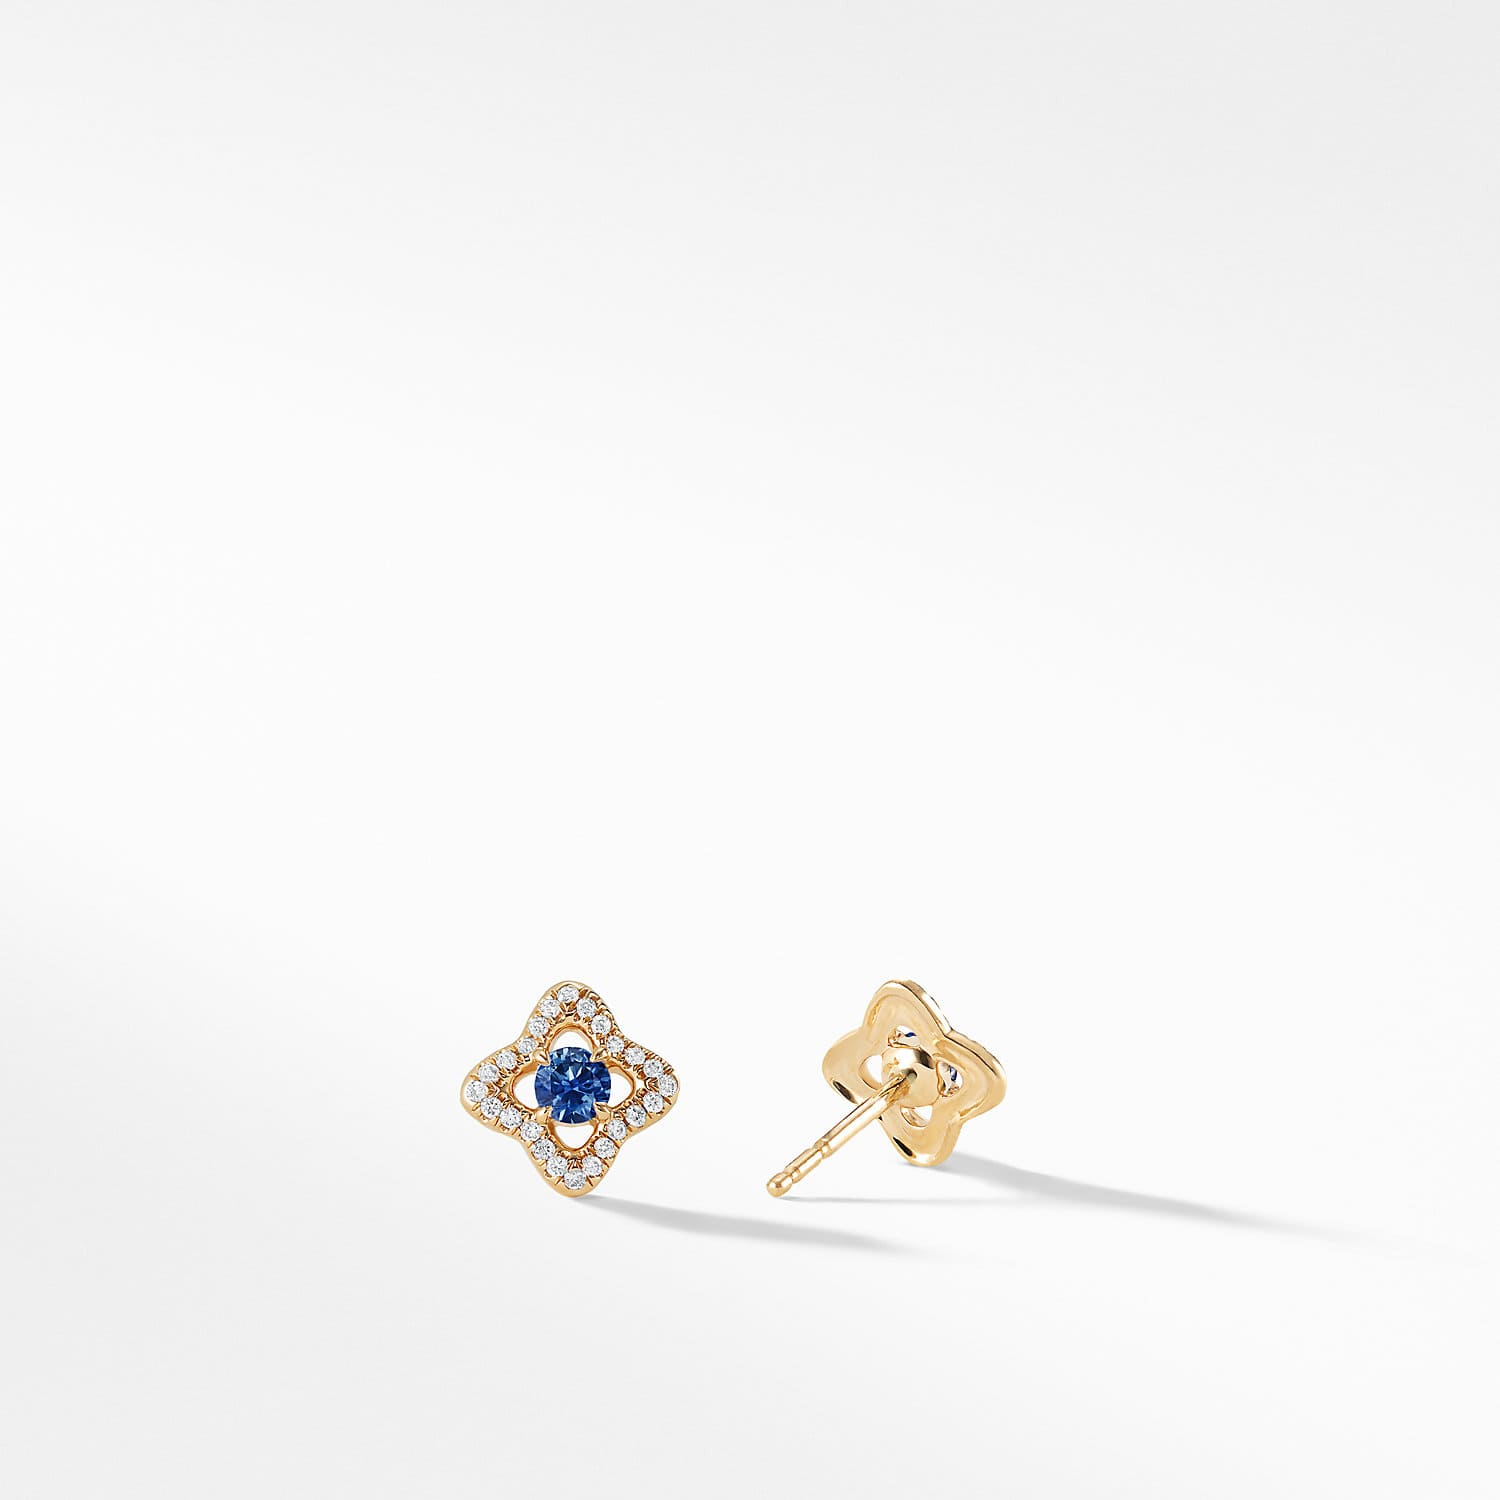 Venetian Quatrefoil Earrings With Blue Shires And Diamonds In 18k Gold Product Image